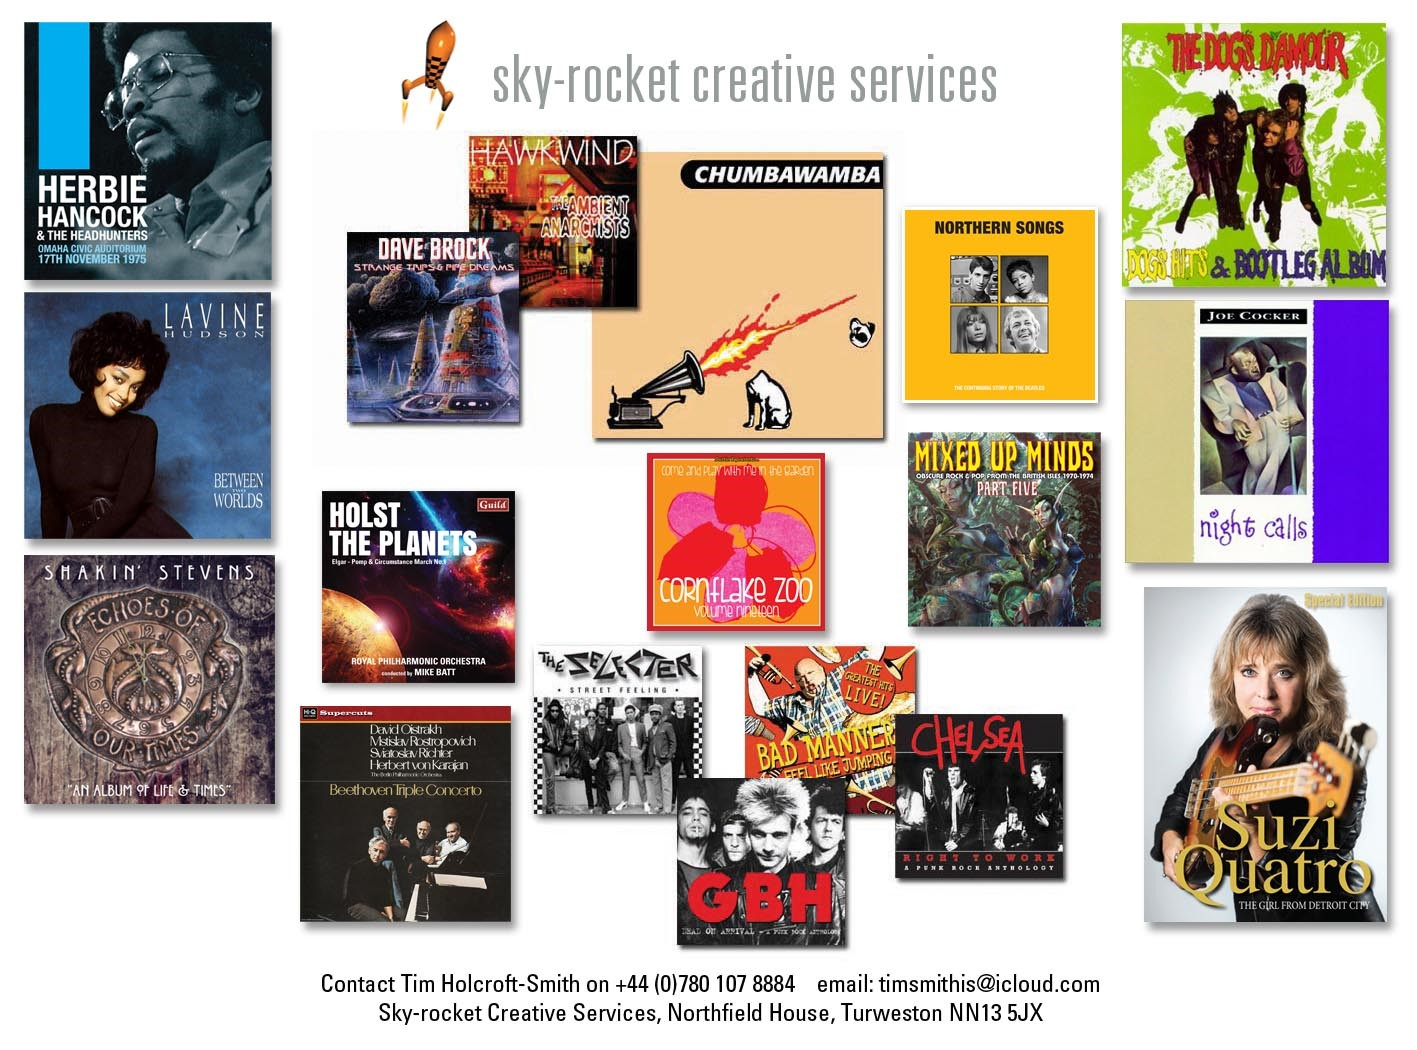 Tim Holcroft-Smith - Sky-Rocket Creative - Mobile: +44 (0)7801 078 884